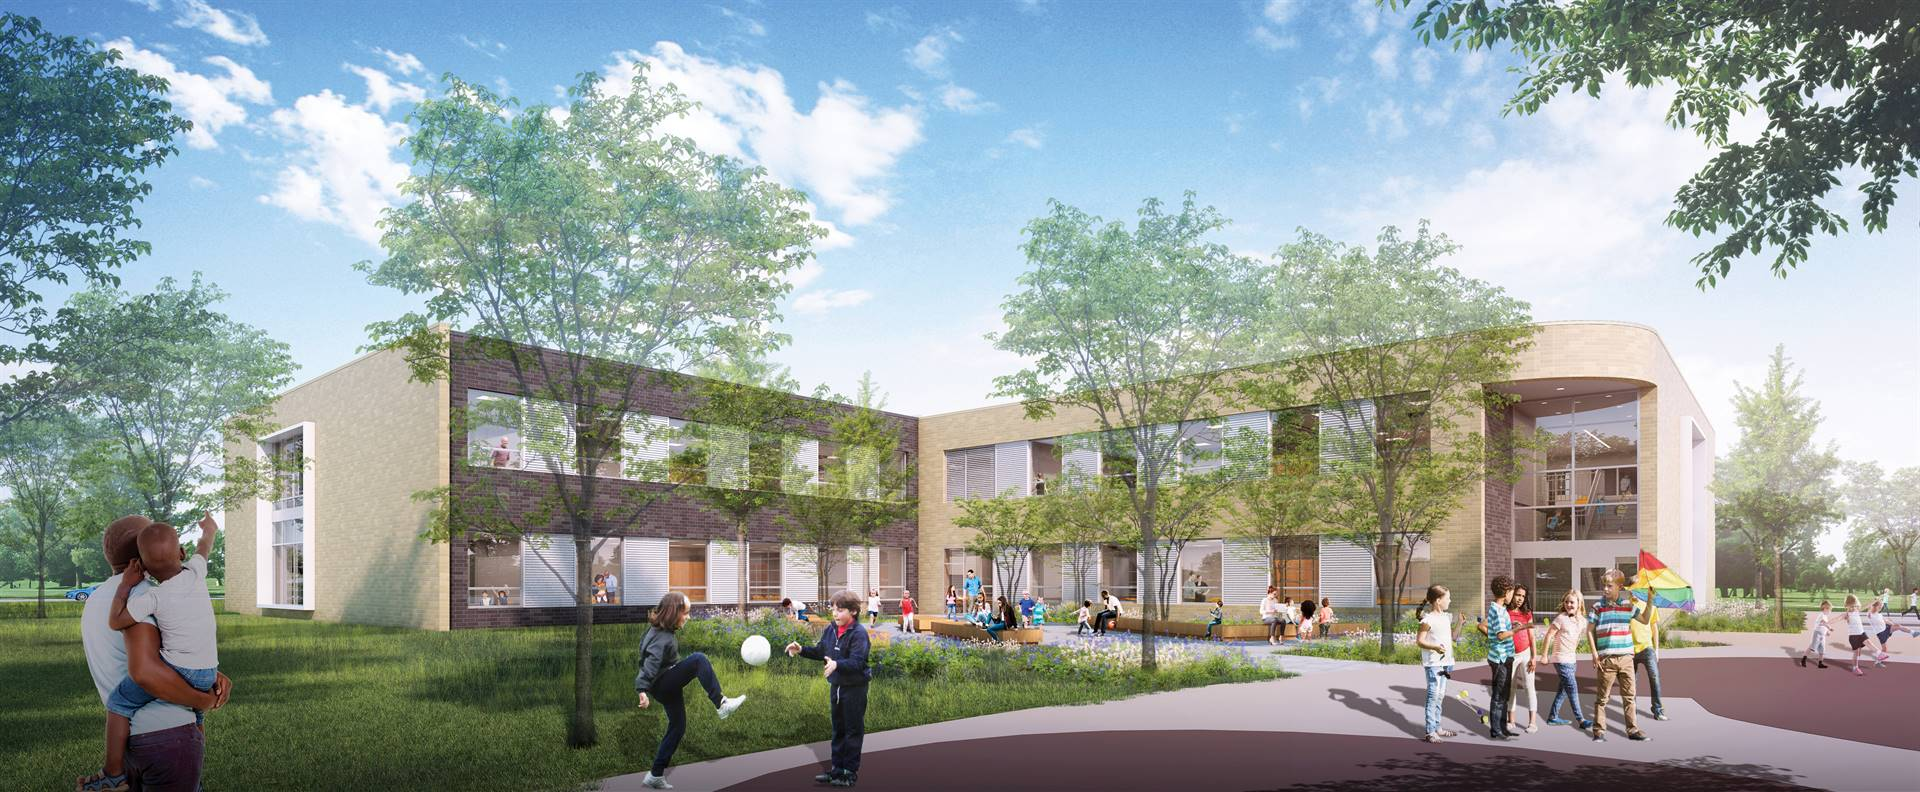 A rendering of the new Wickliffe Progressive Elementary School